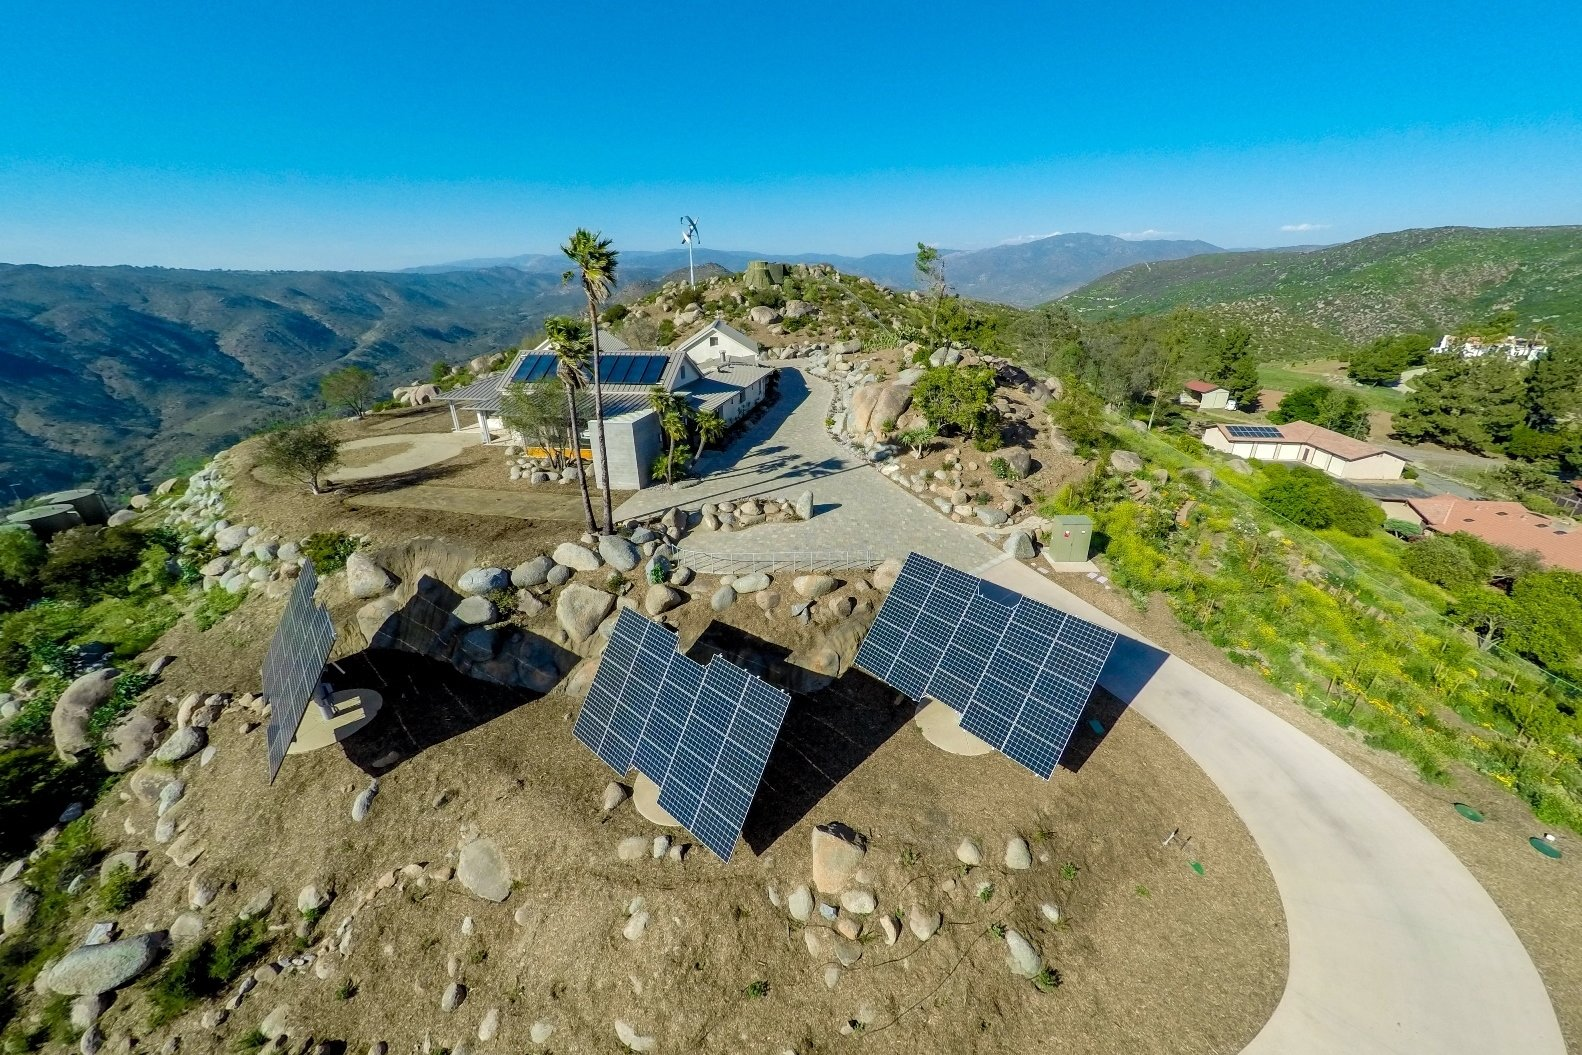 Casa Aguila Drone Photo of Home and Solar Panels  Casa Aguila